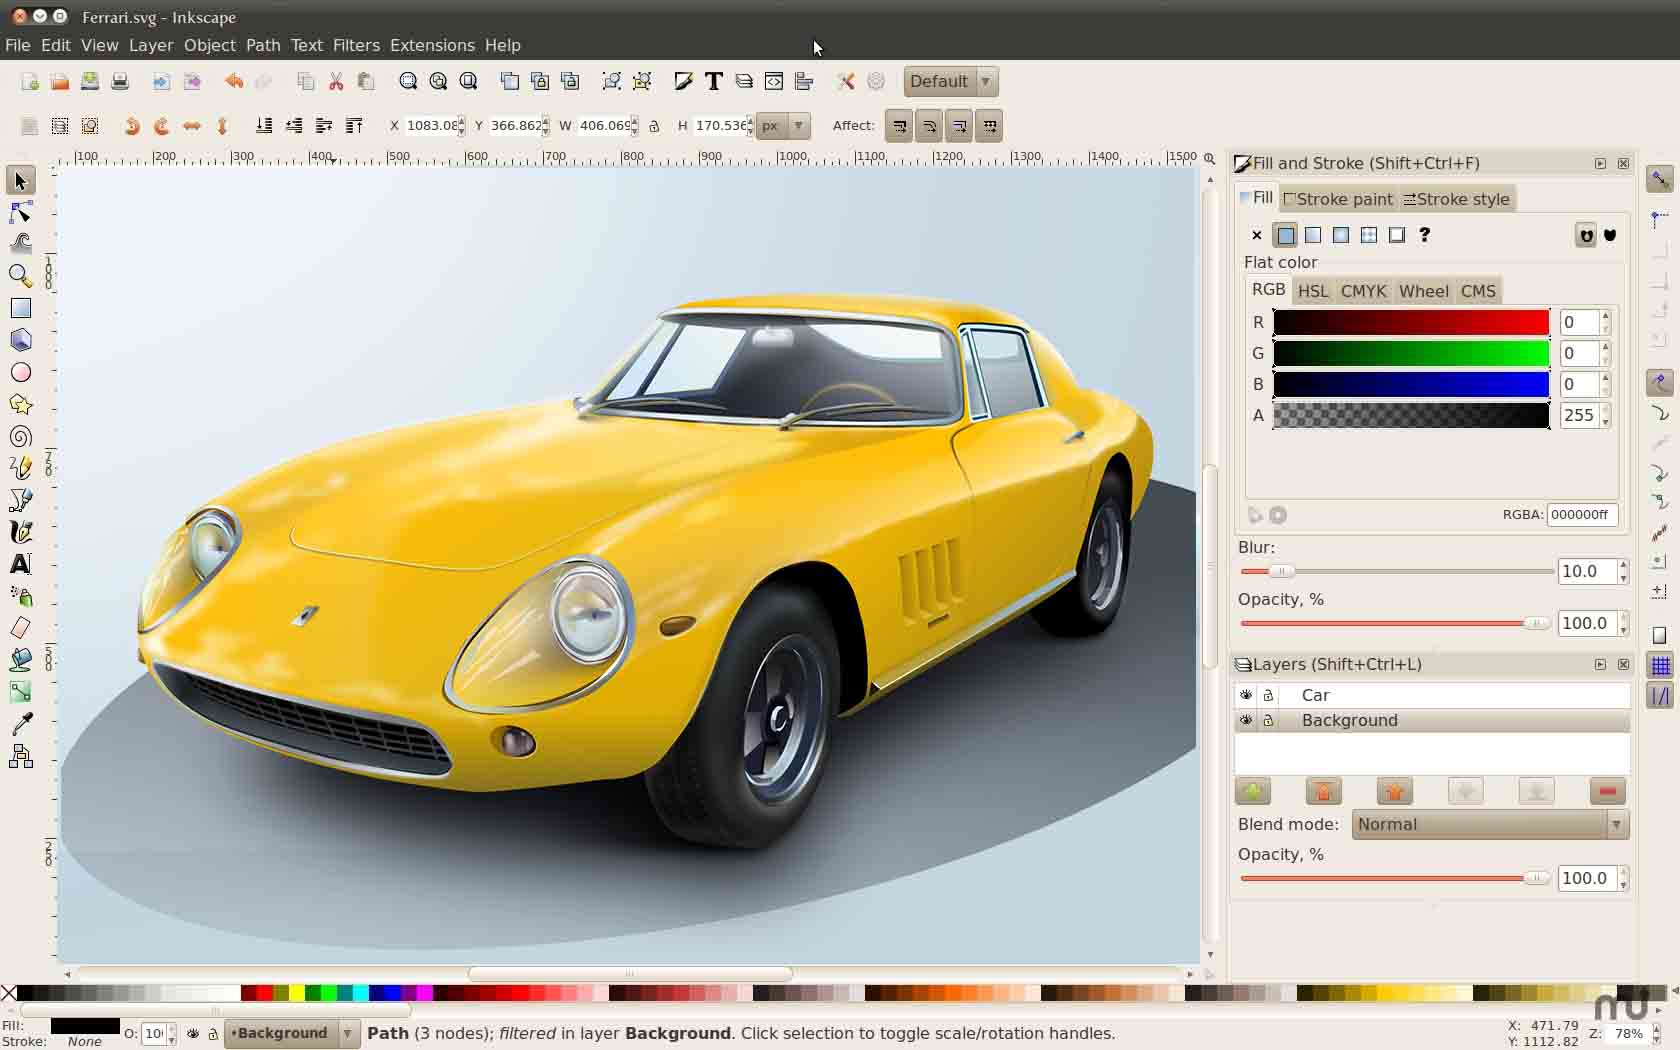 Inkscape is a free and open source vector graphics editor